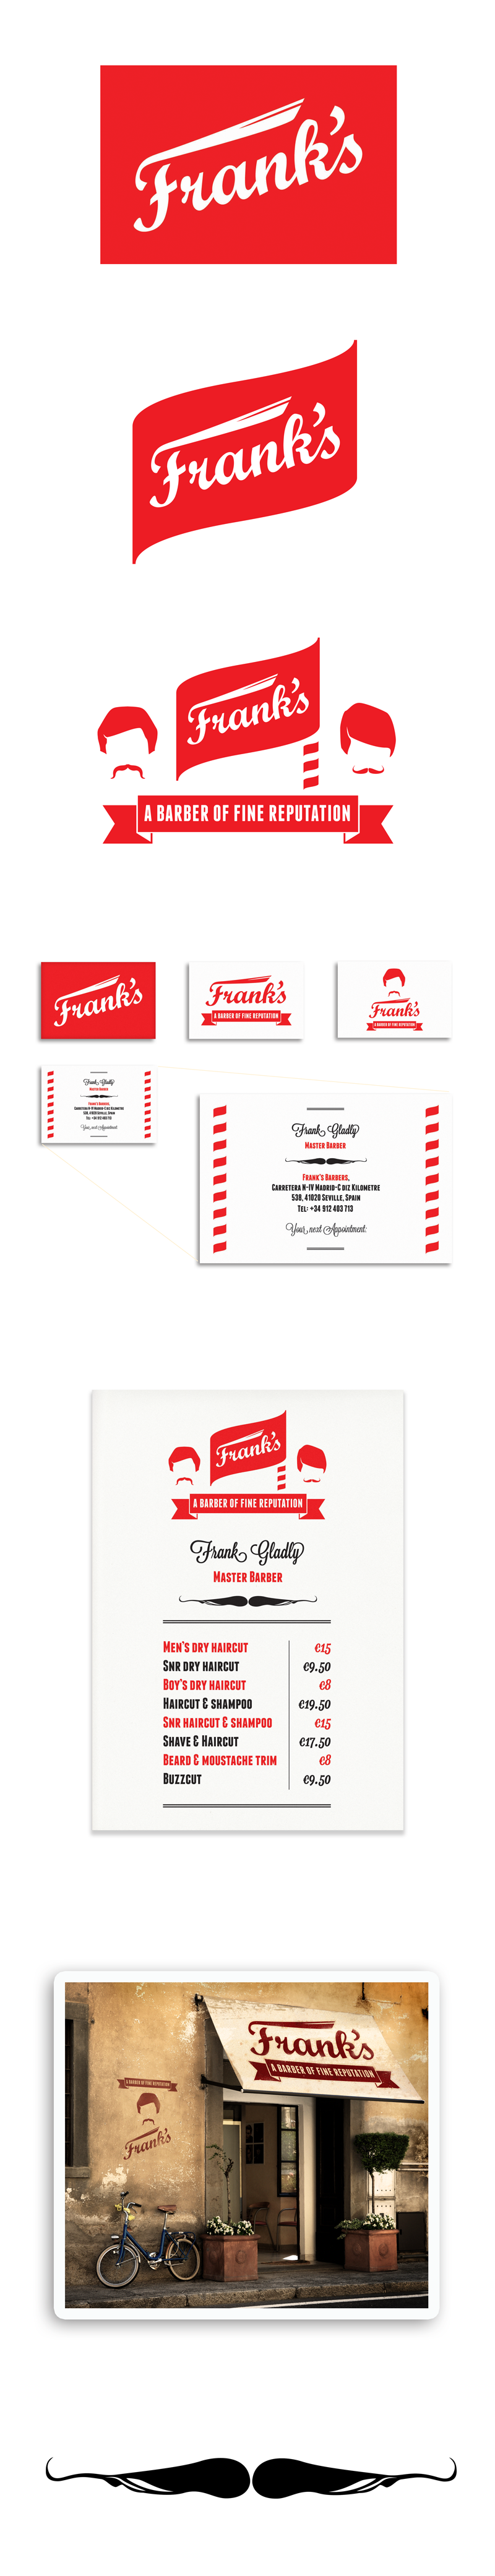 Barber Requirements : FRANKS BARBER SHOP QUICK-LOOK PROJECT REQUIREMENTS: logo designs ...